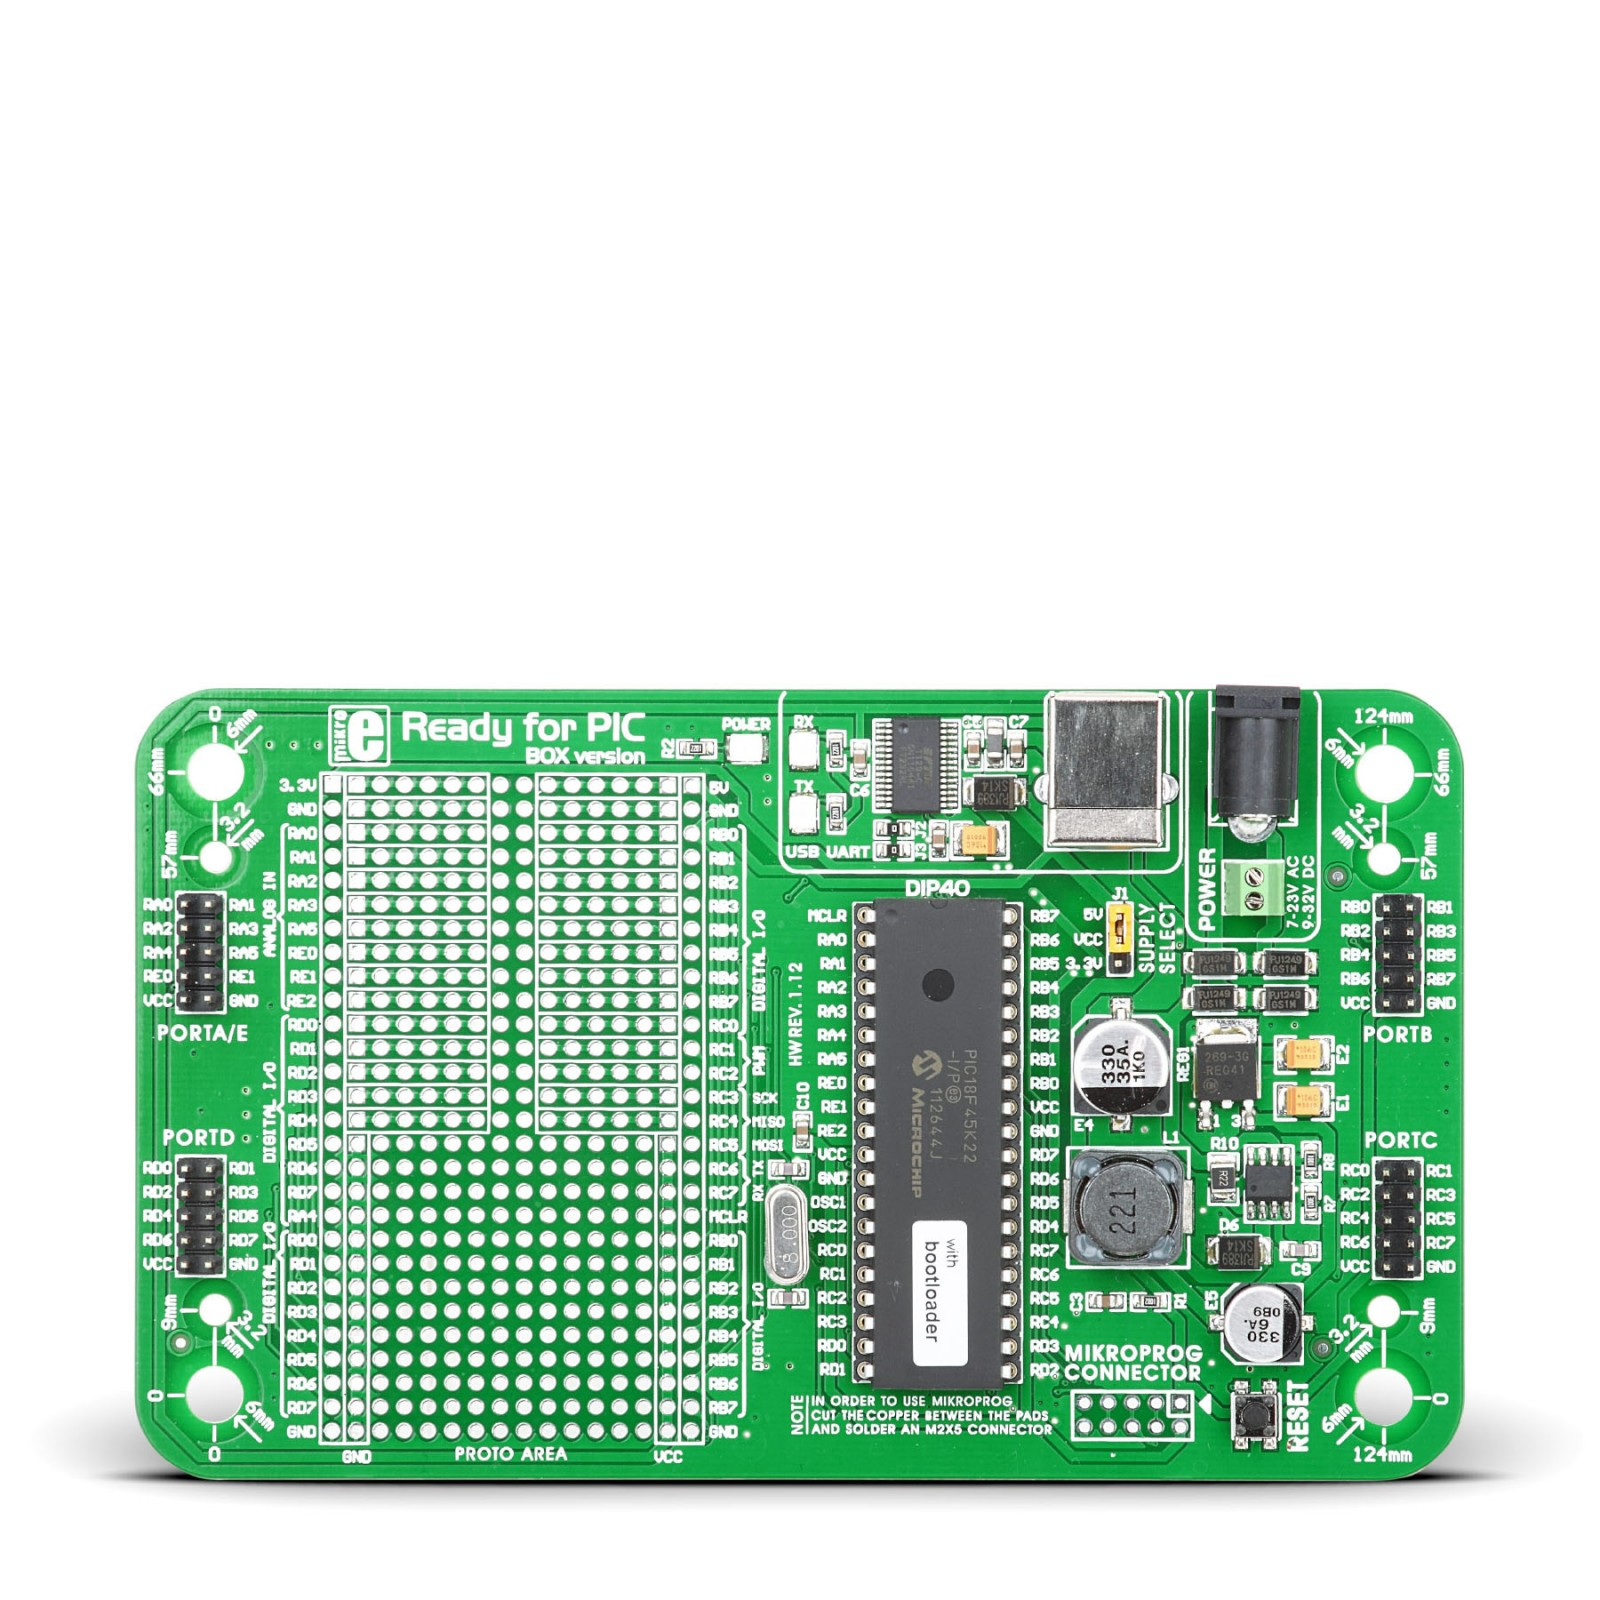 Ready for PIC - 40 Pin PIC Development Board with PIC18F45K22